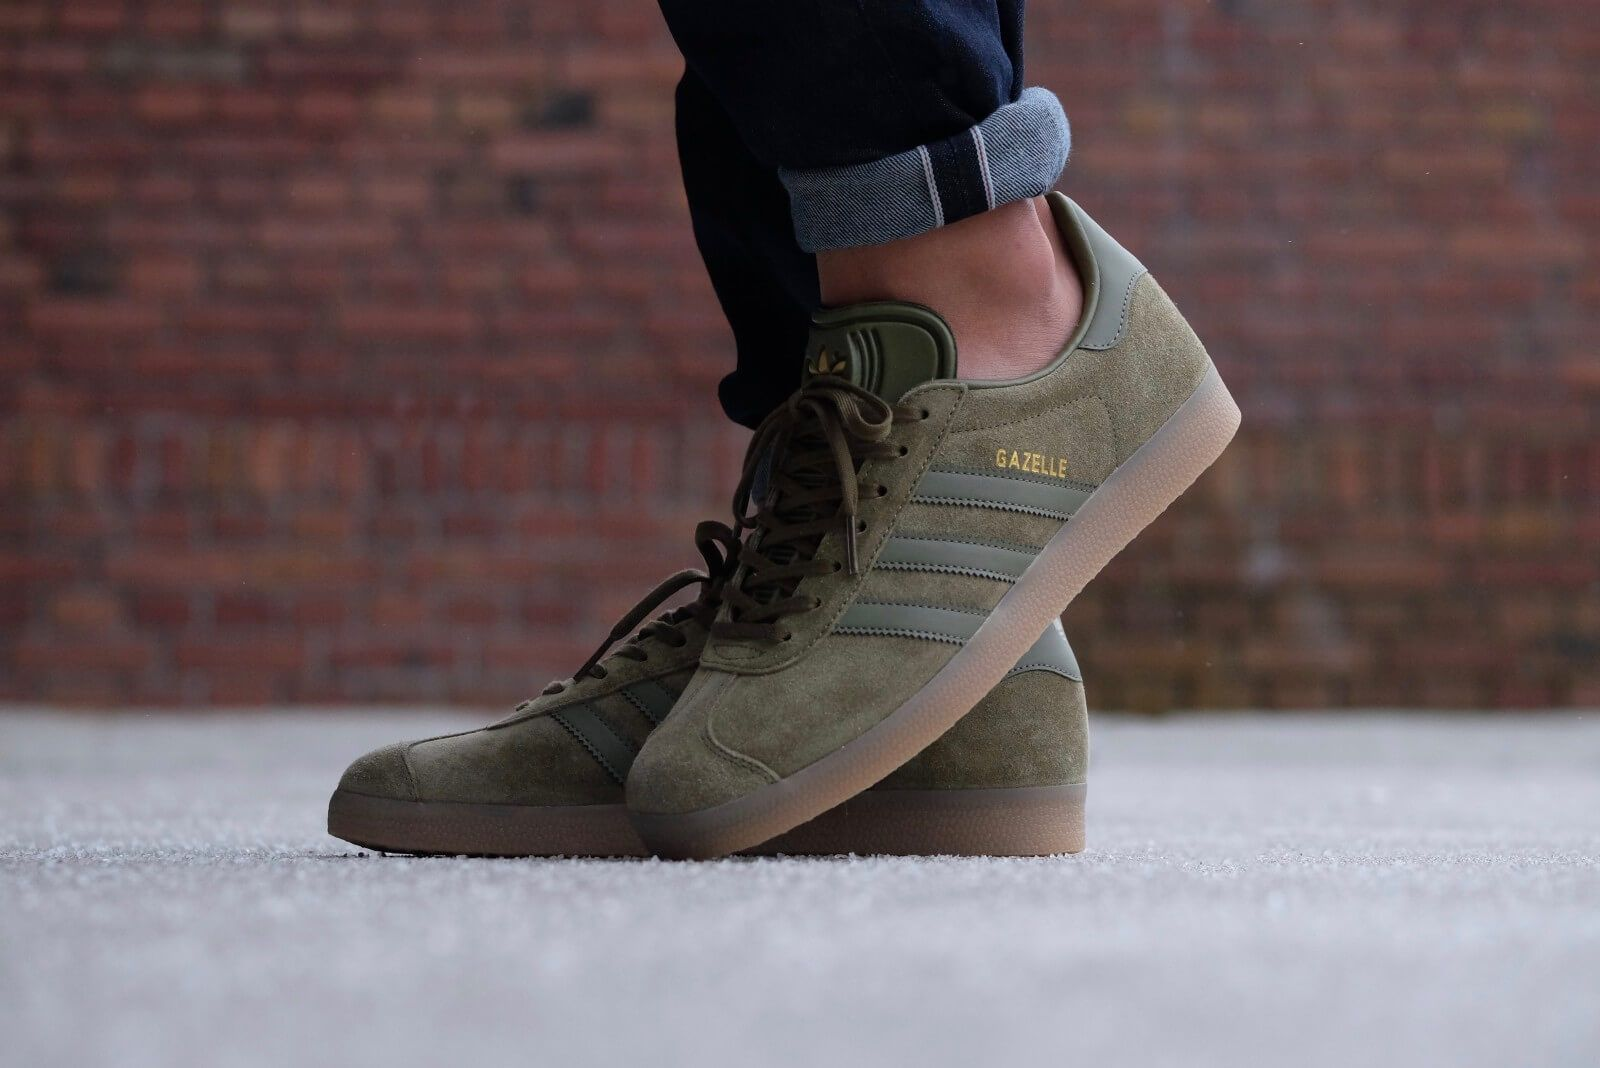 the best attitude b084f 16285 Adidas Gazelle Olive CarbonGum - BB5265